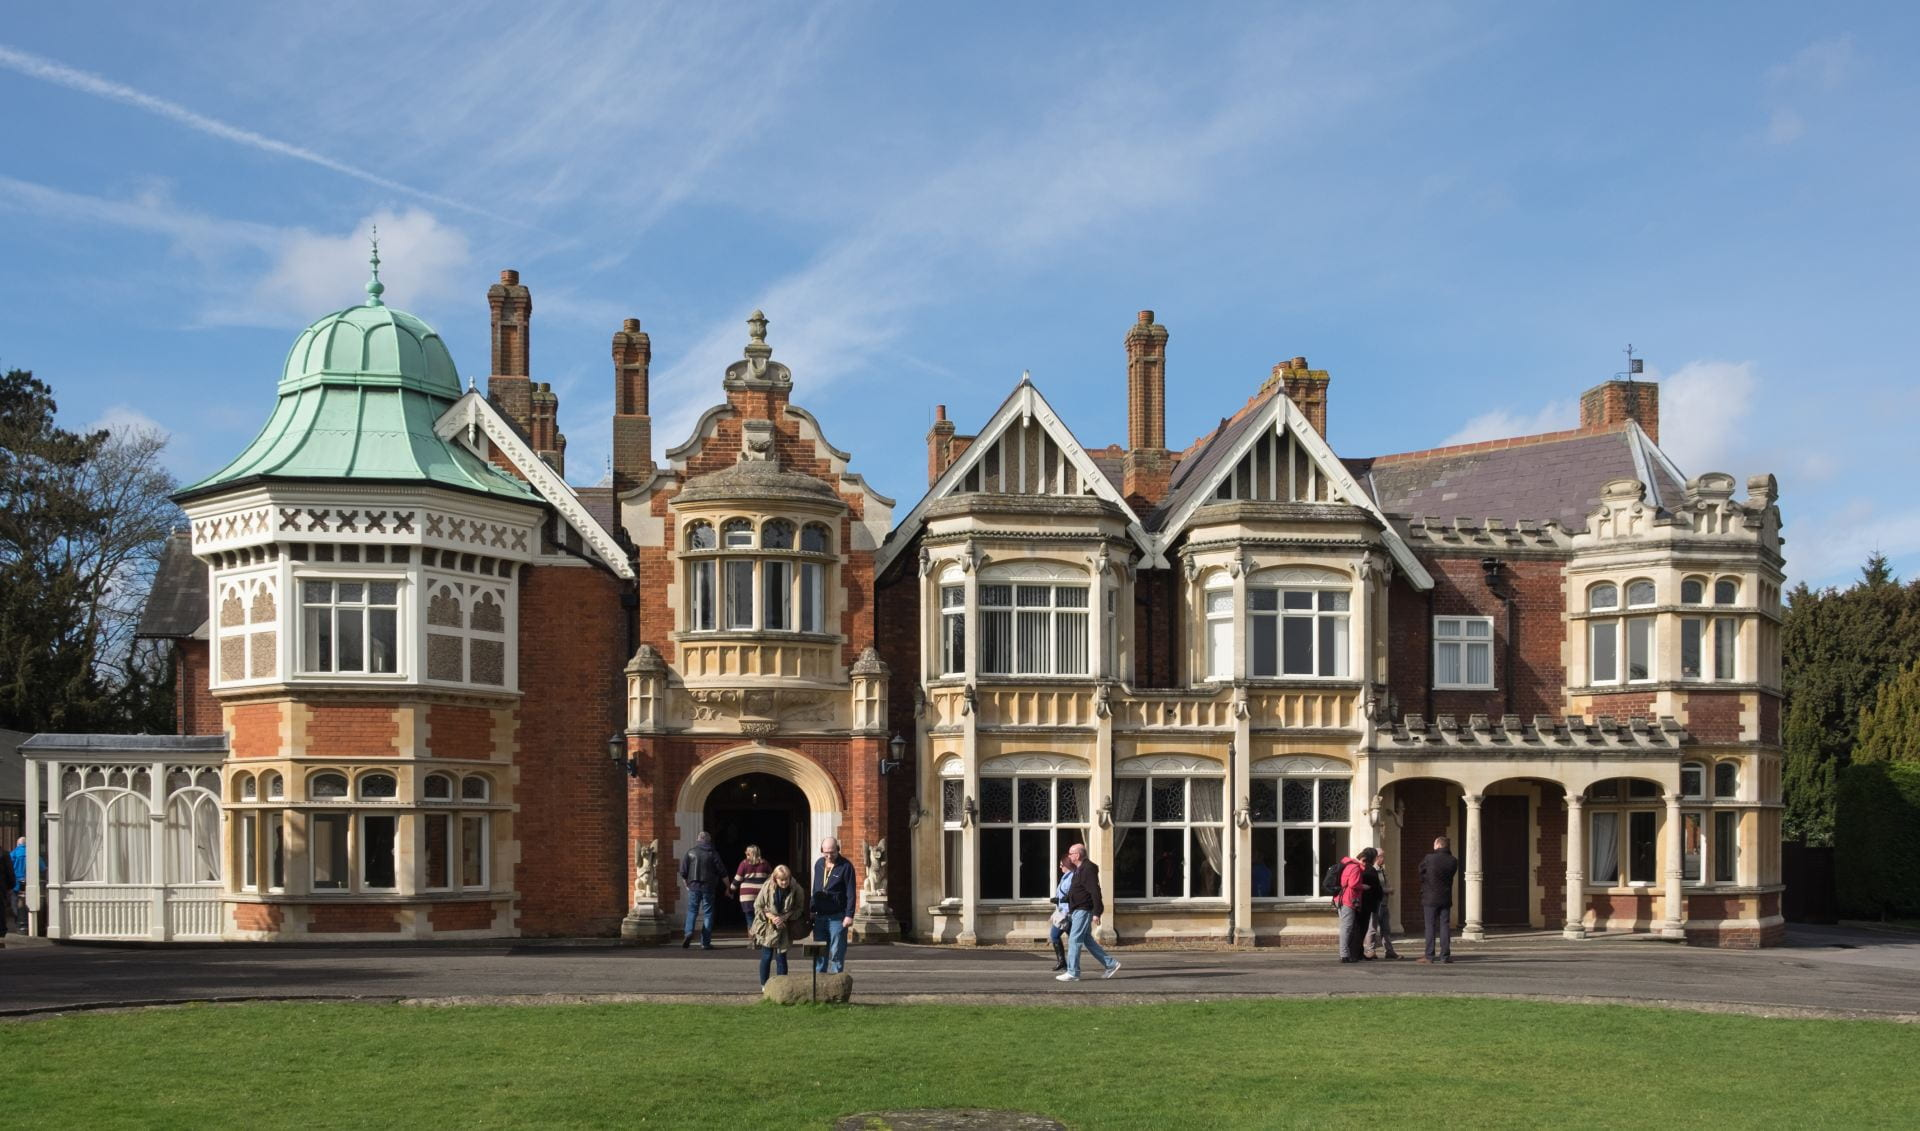 Trip to Bletchley Park